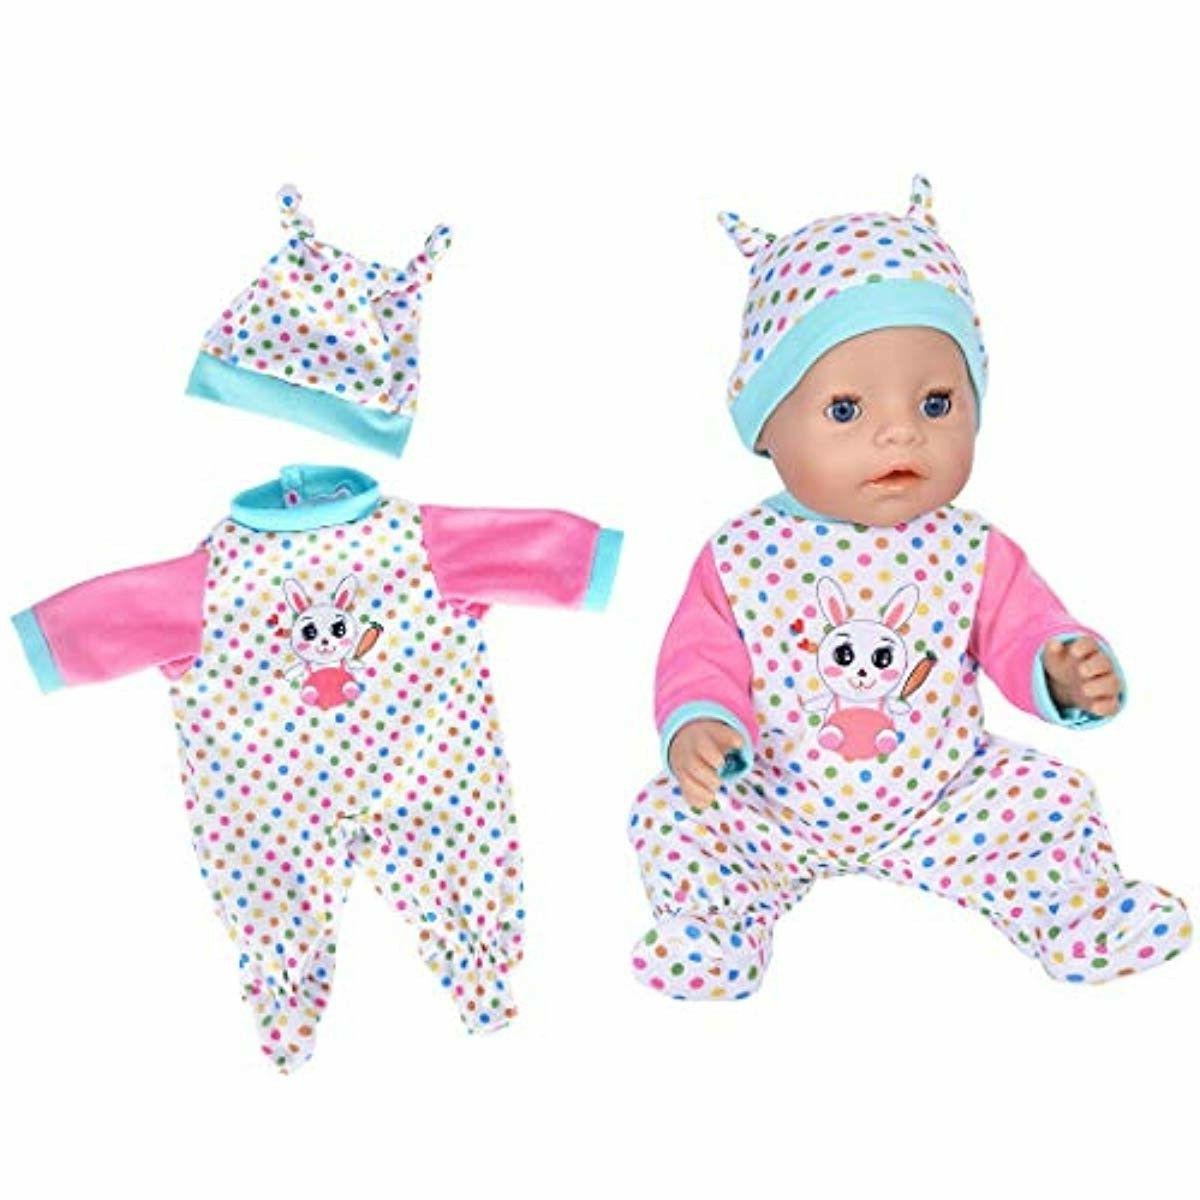 7 Pcs Doll for New Baby Dolls/ Bitty